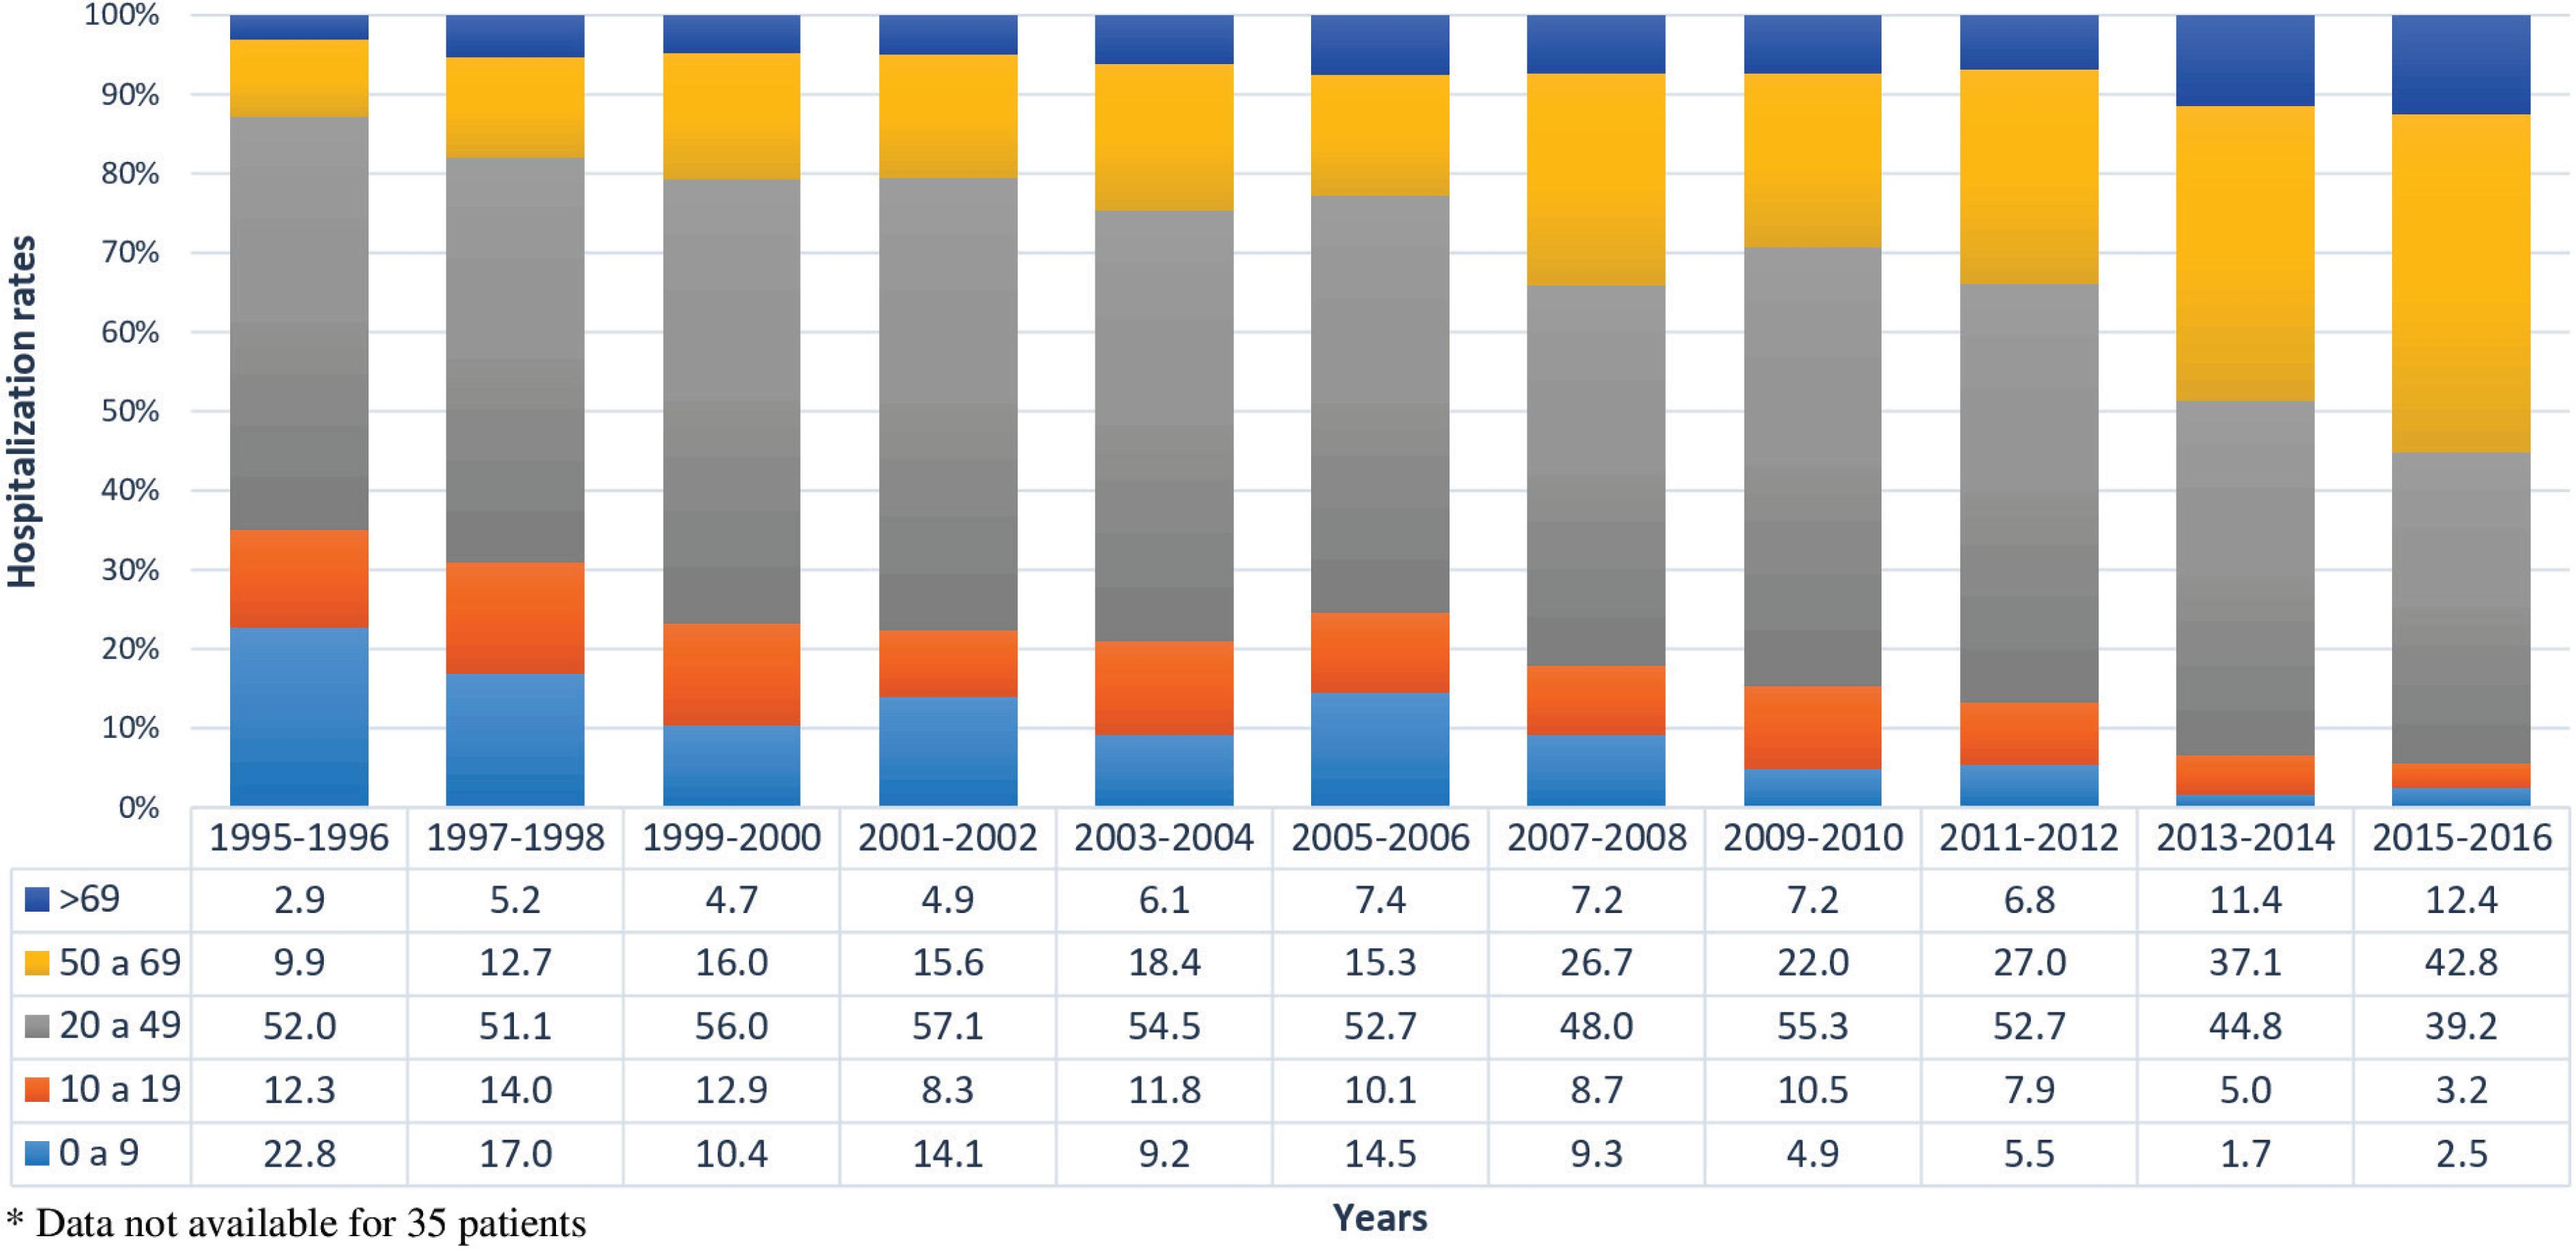 Hospitalization rates of 4,651* admissions by age group according to the biennium (1995-2016).